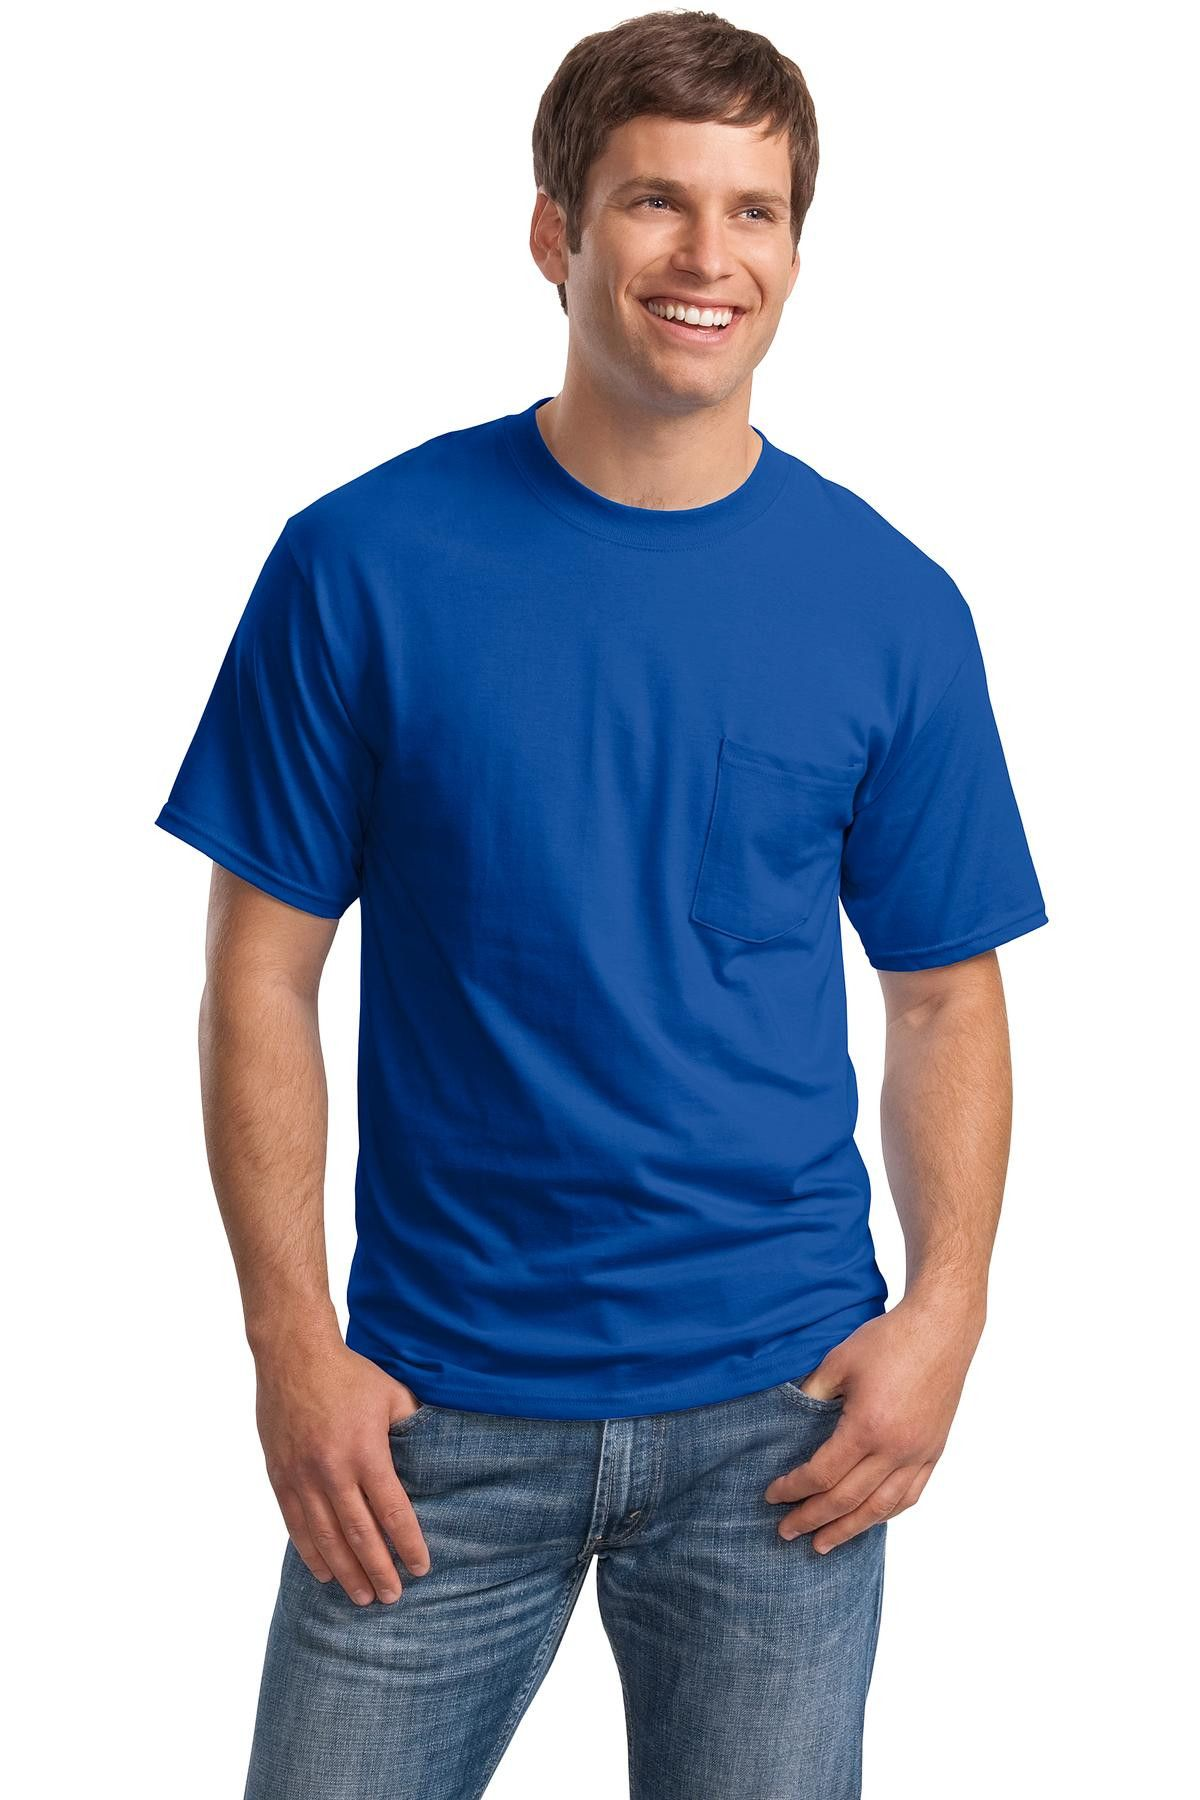 Hanes Adult Beefy-T® T-Shirt with Deep Royal